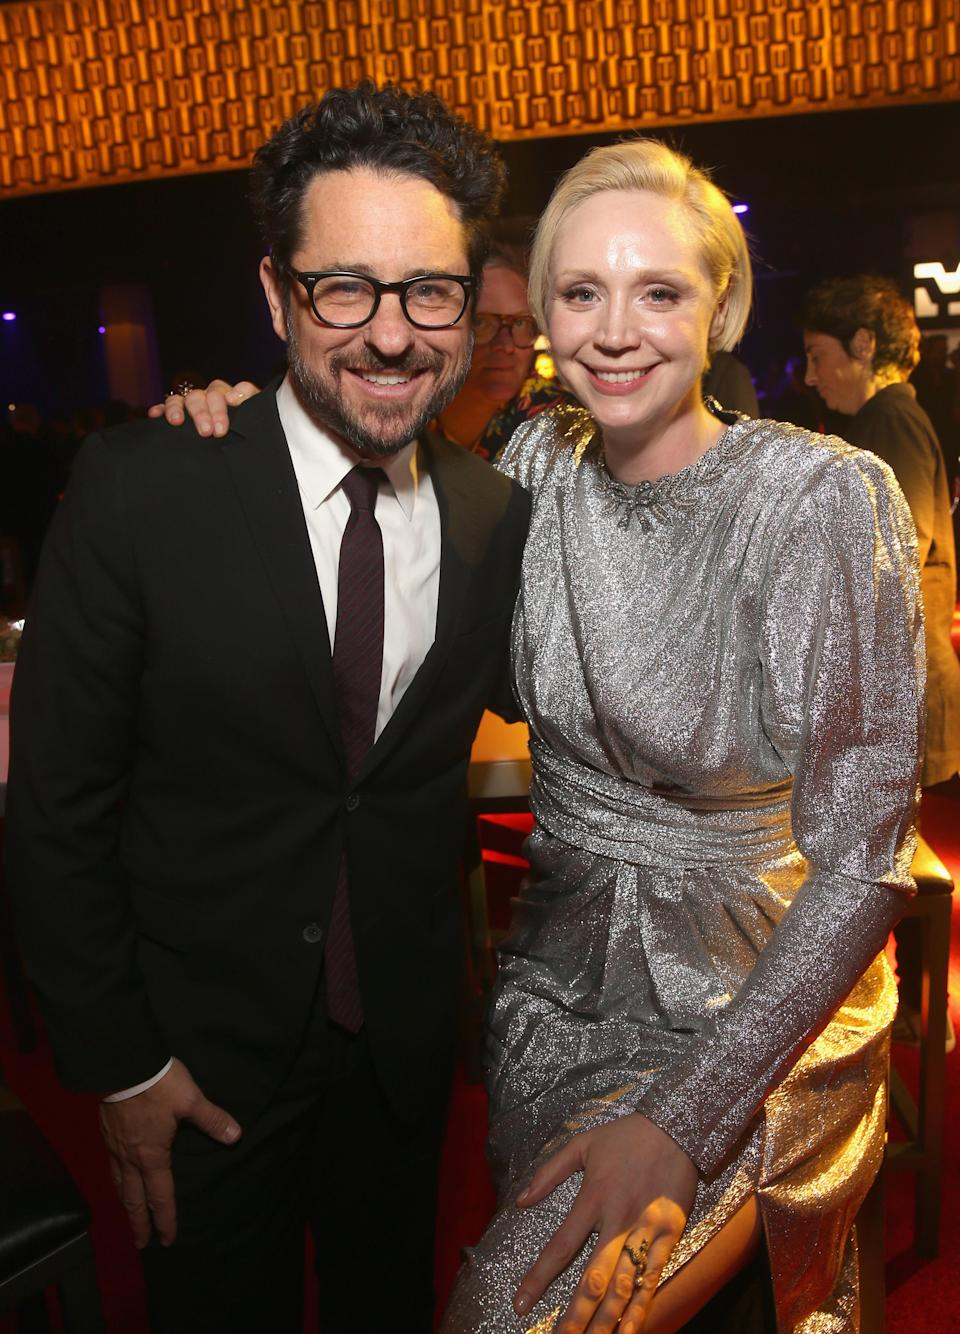 J.J. Abrams and Gwendoline Christie. (Photo: Jesse Grant/Getty Images for Disney)